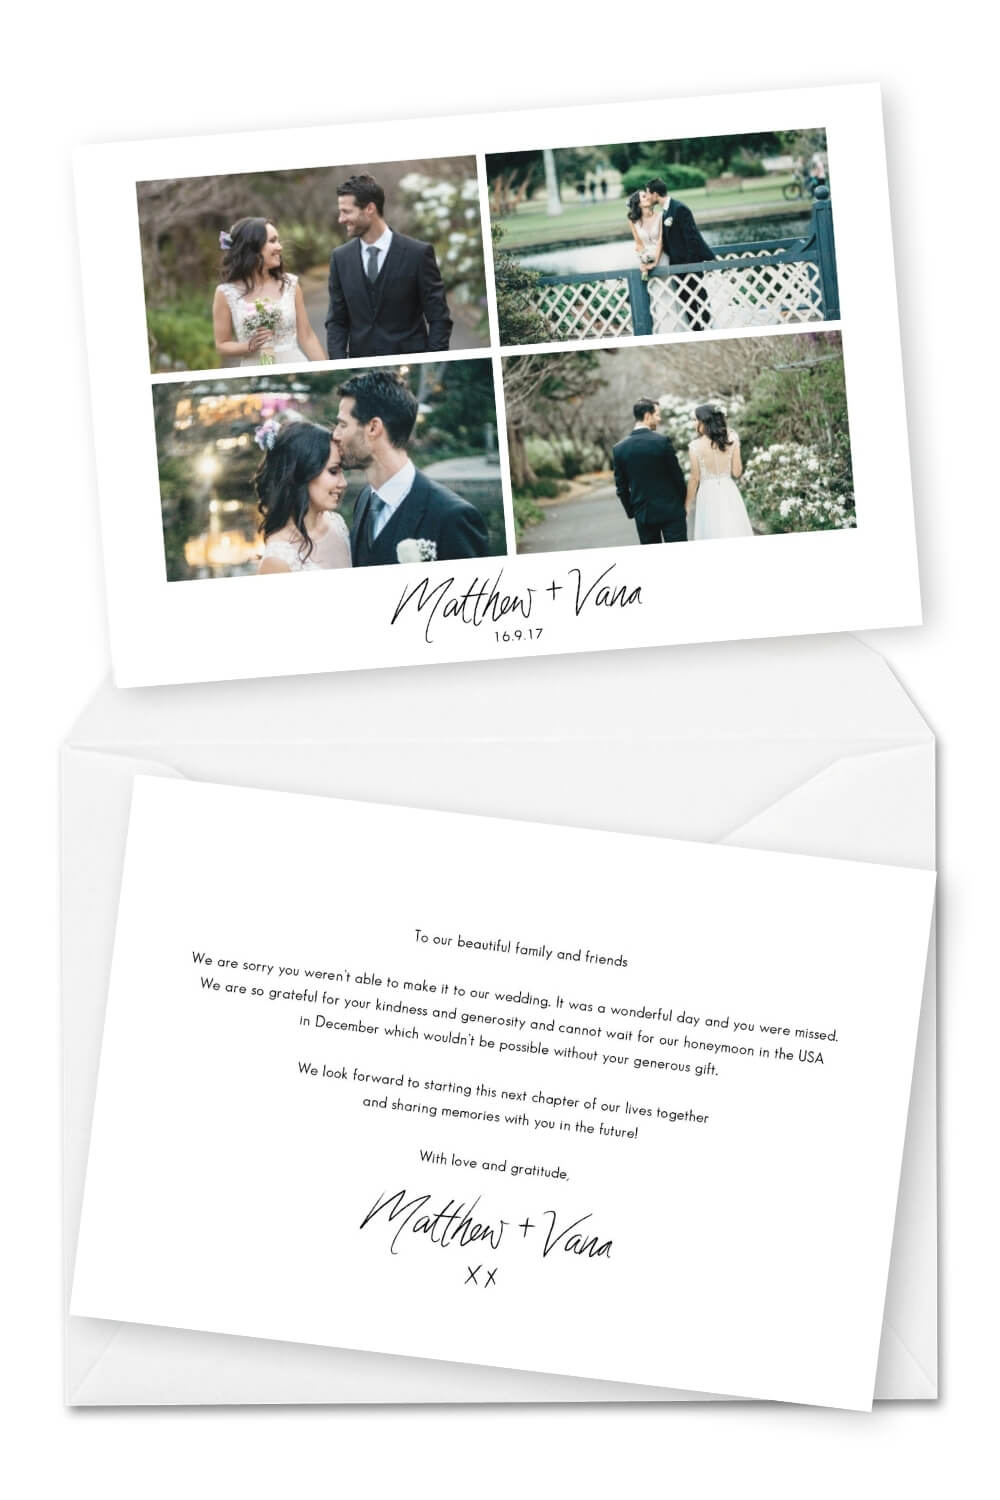 Wedding Thank You Card Wording for Someone Who Didn't Attend For the Love of Stationery T-one Image